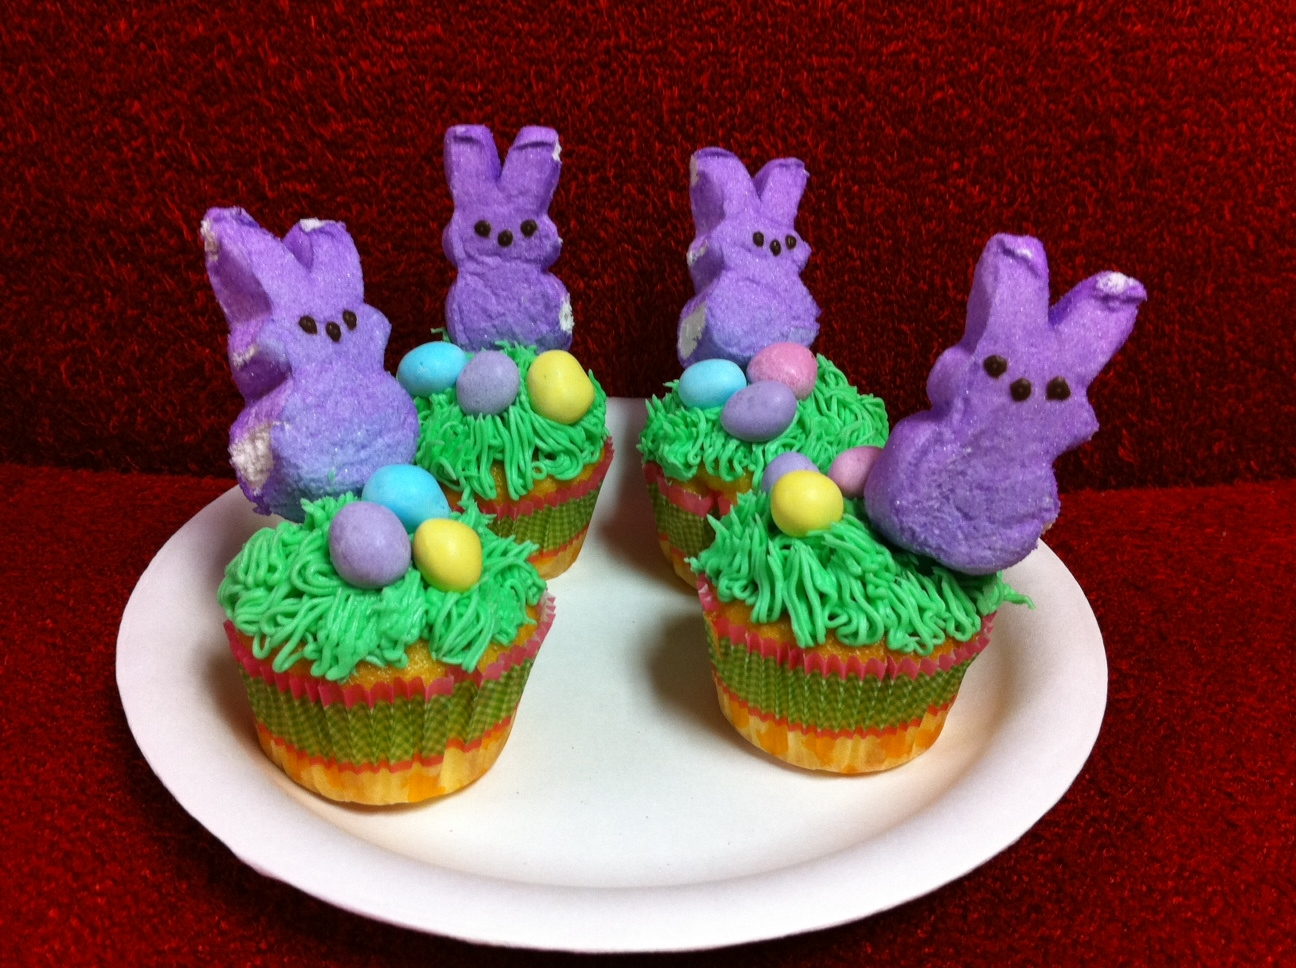 Easter Bunny Cakes Decoration Ideas Little Birthday Cakes